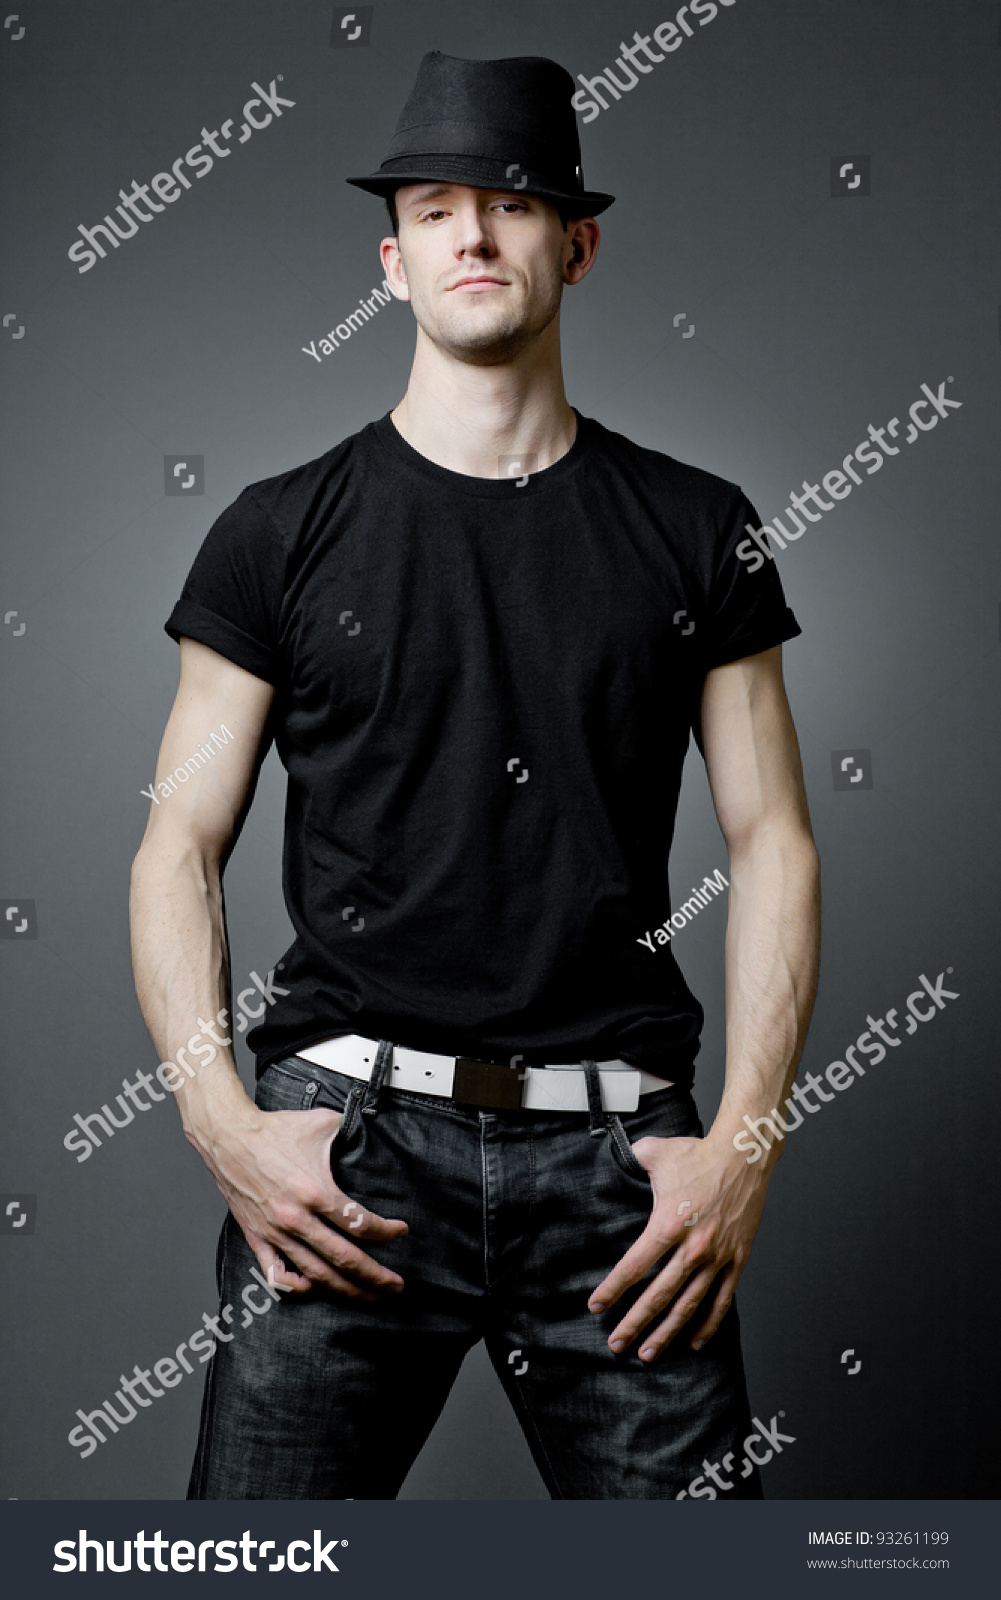 Black t shirt guy - Young Handsome Guy Posing In Black T Shirt